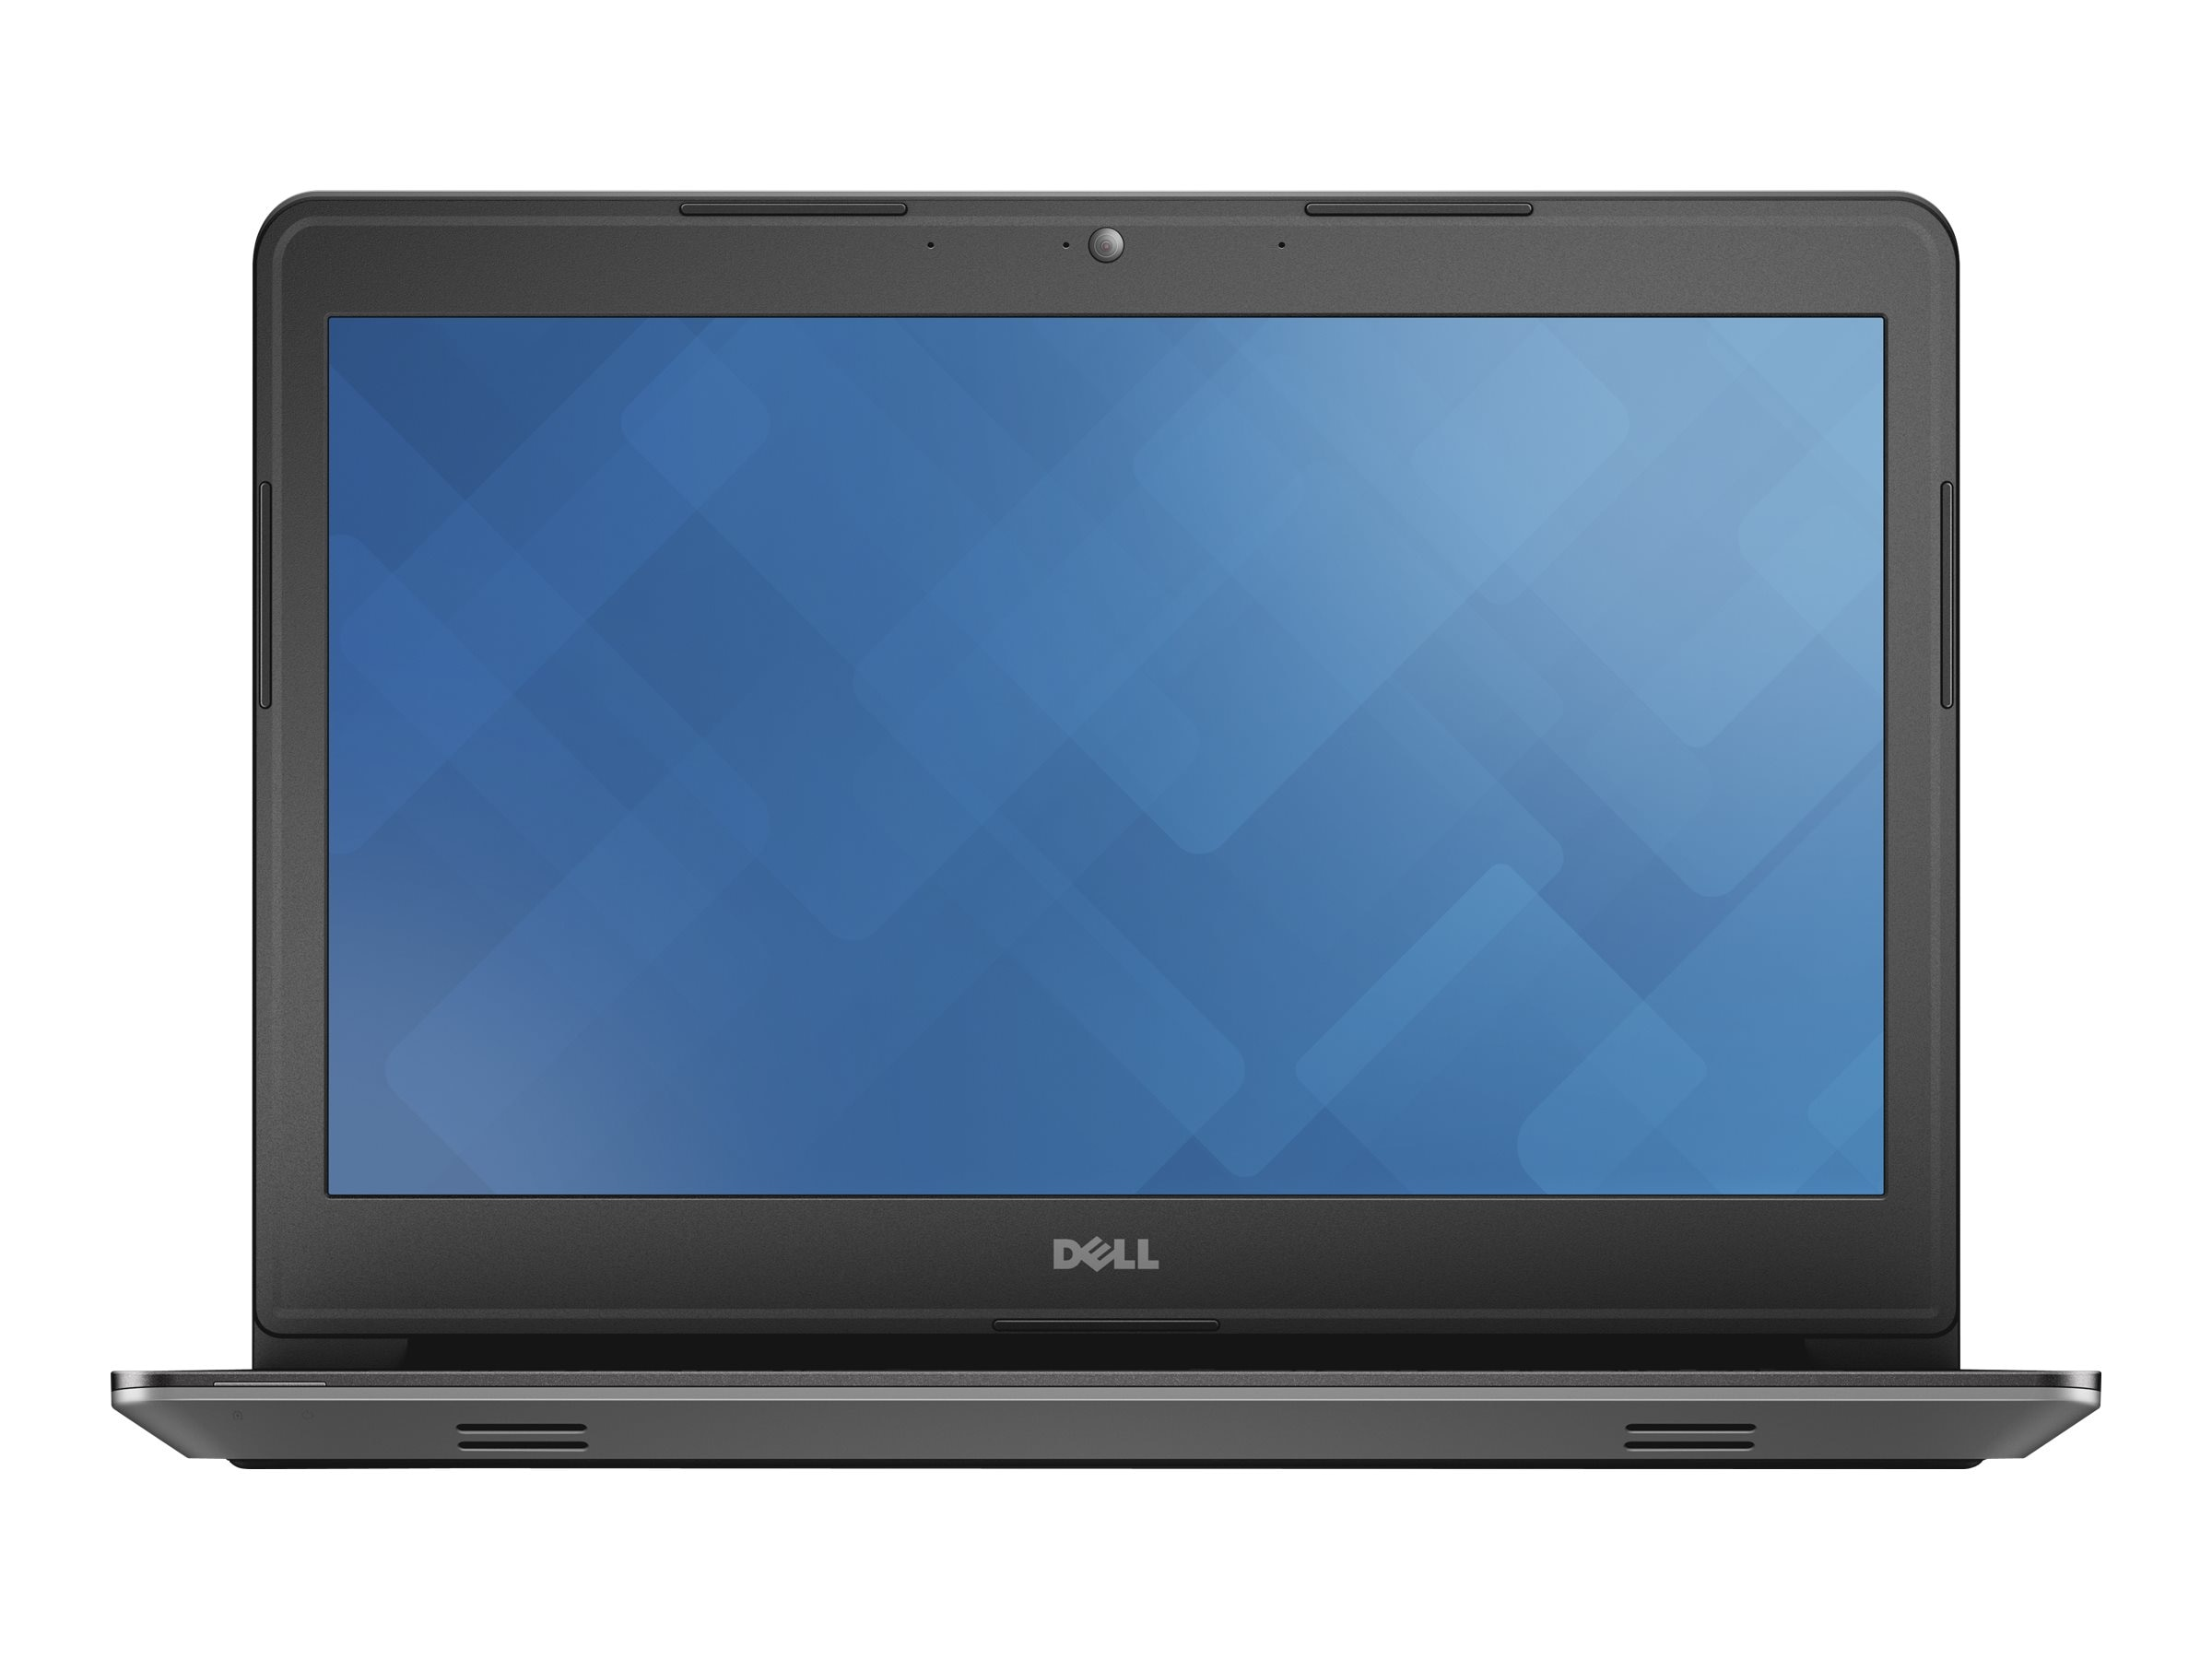 Dell Latitude 3450 2.0GHz Core i3 14in display, DPVYJ, 18442245, Notebooks